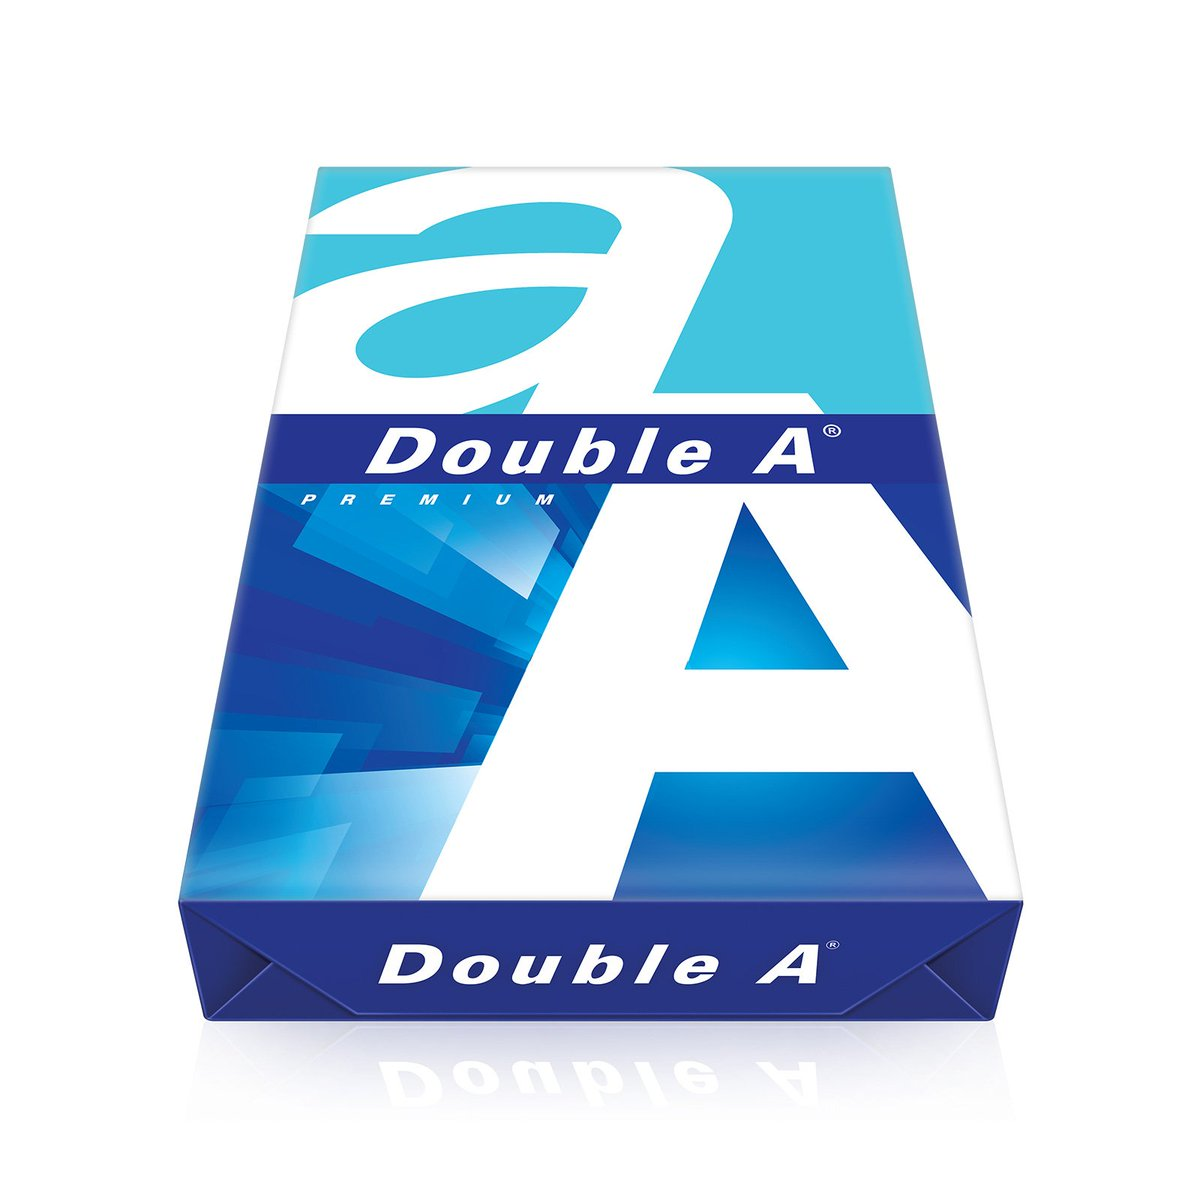 DOUBLE A PAPER FACTORY THAILAND (@doubleafactory) | Twitter